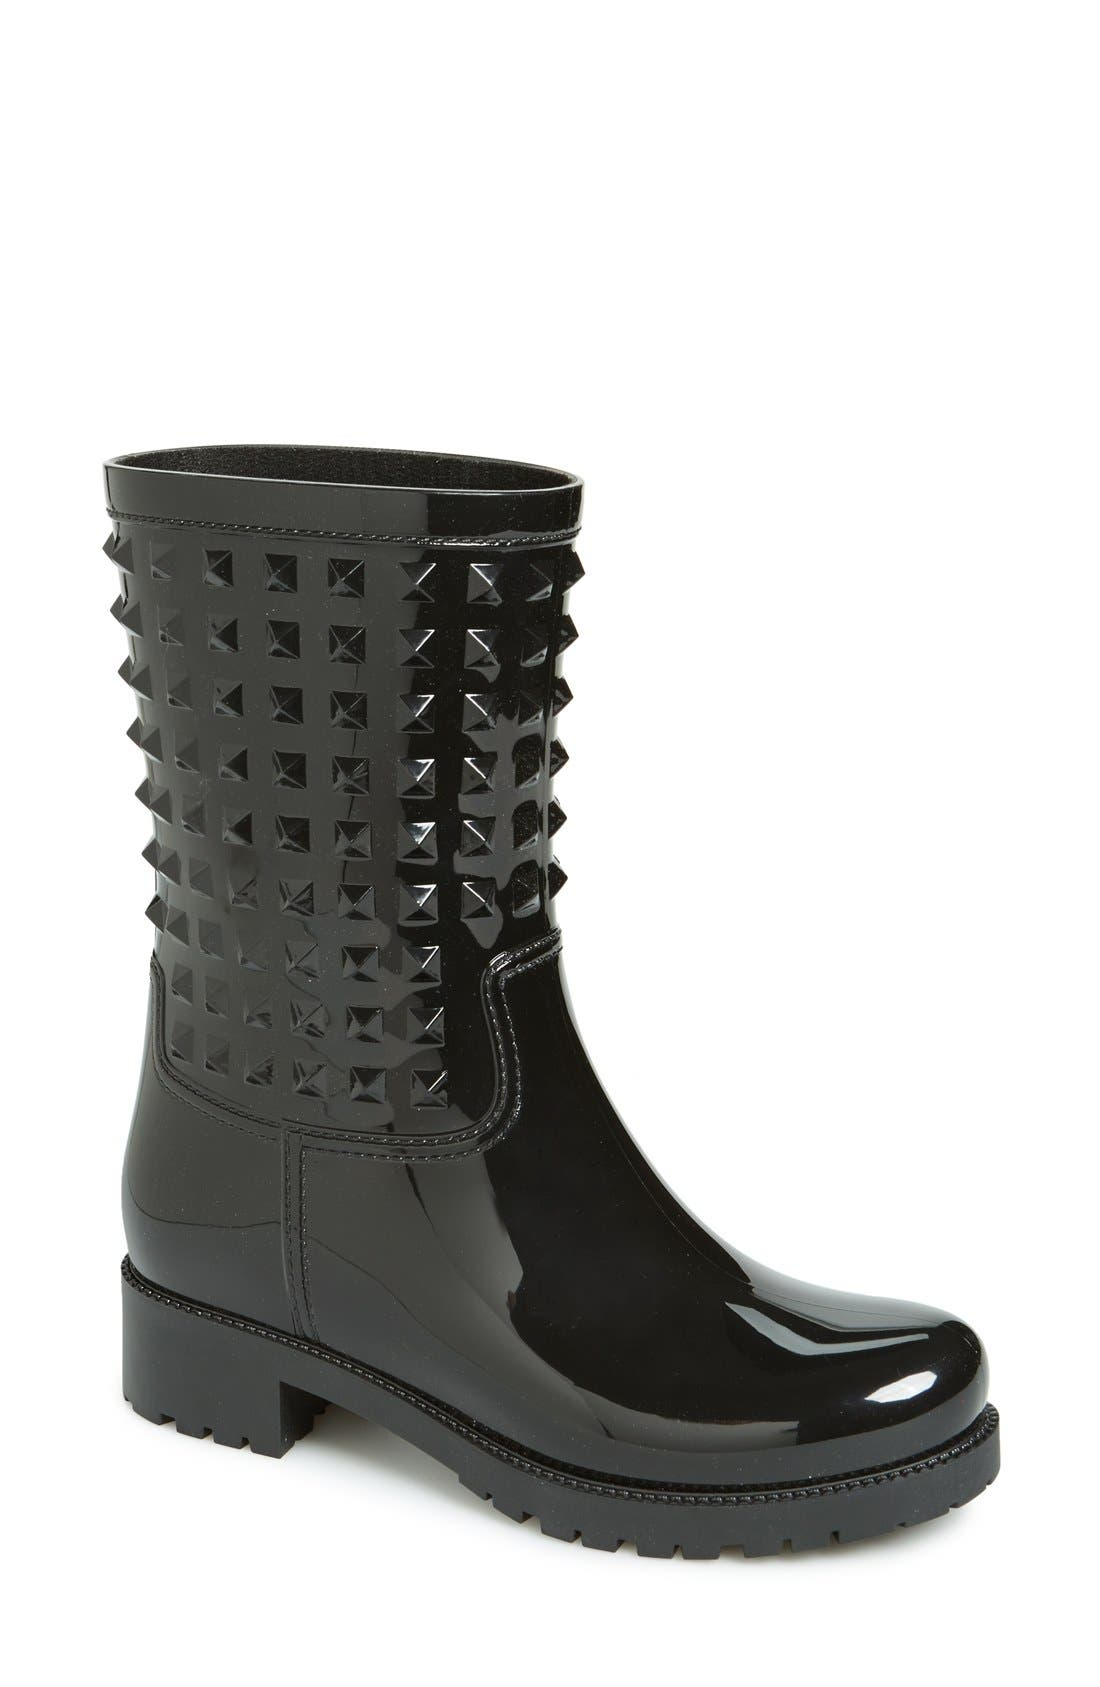 Alternate Image 1 Selected - VALENTINO GARAVANI 'Rockstud' Rain Boot (Women)